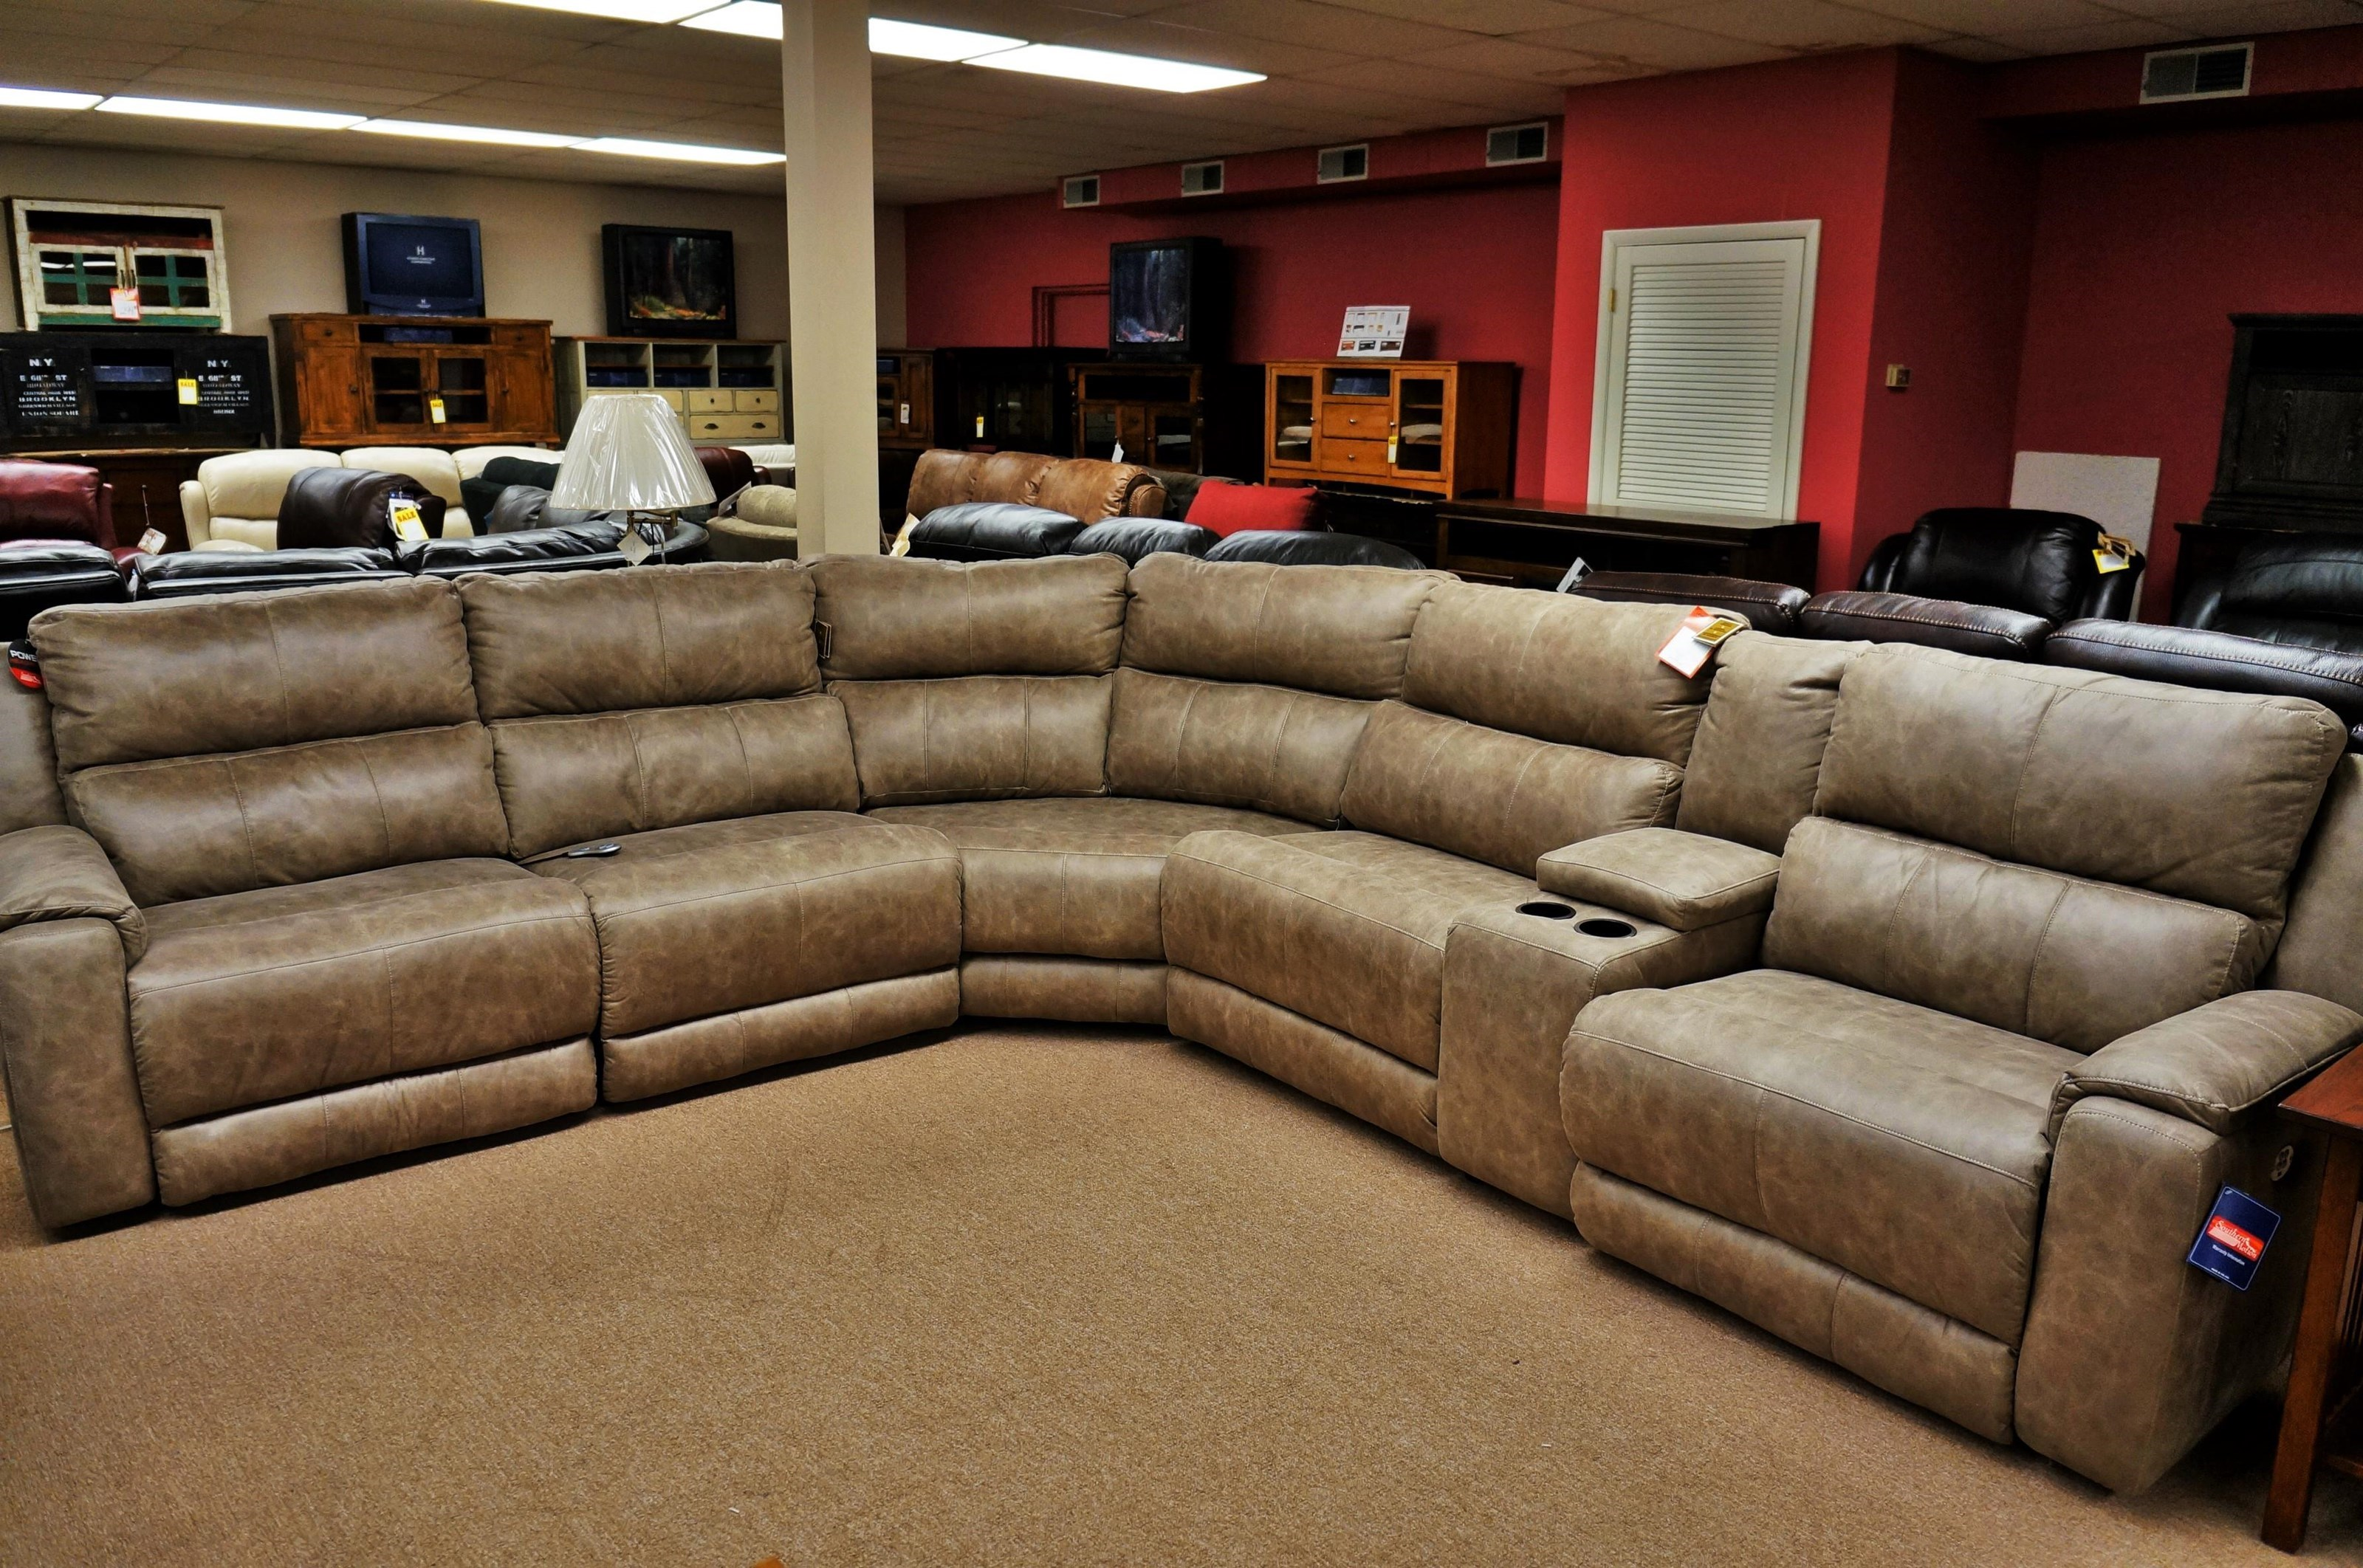 southern motion dazzle reclining sectional sofa with 5 seats and power headrests mueller furniture reclining sectional sofas